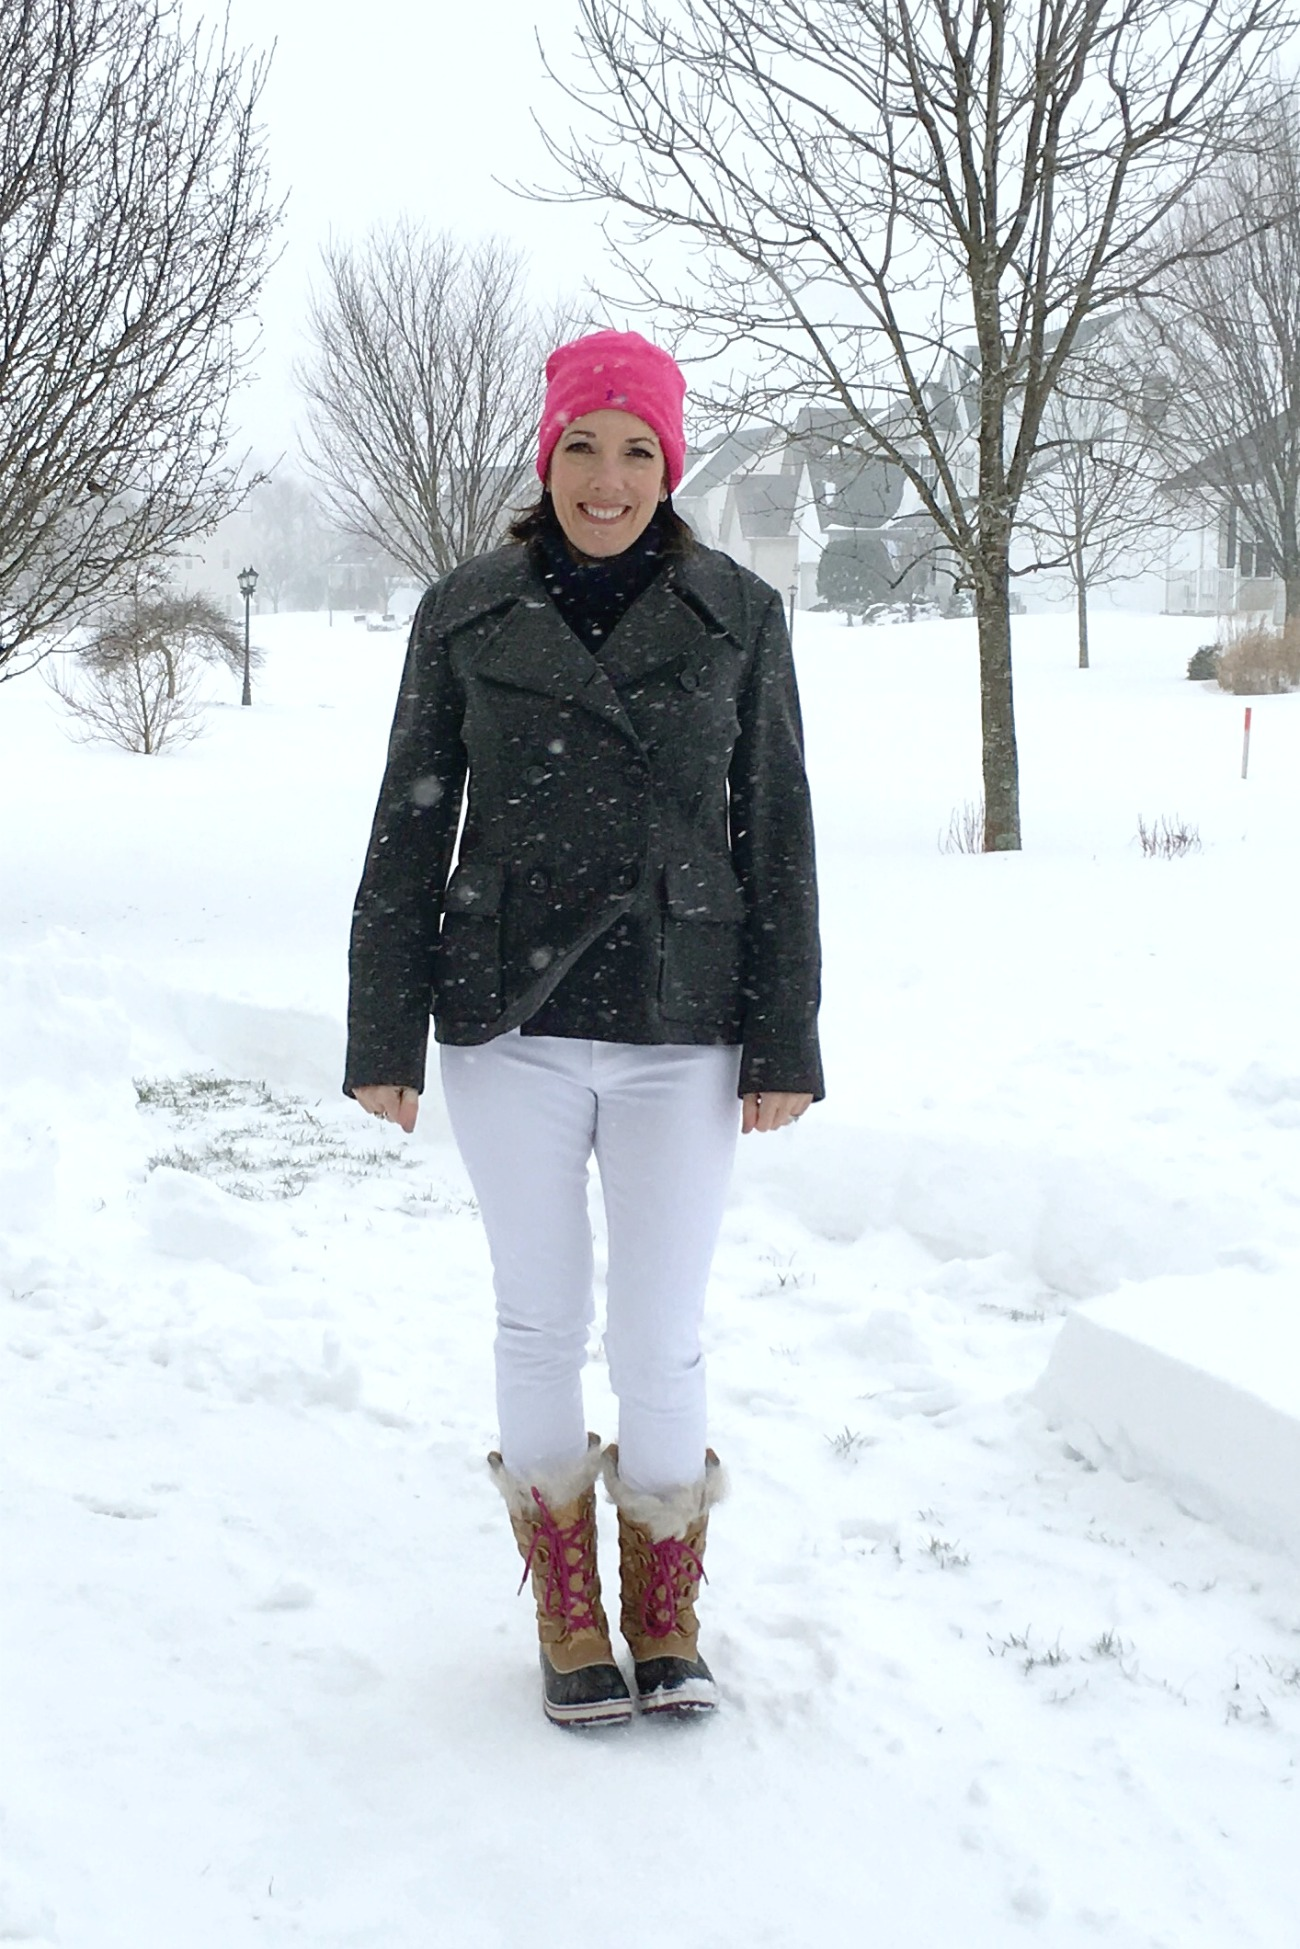 Snow Day Outfit Inspiration